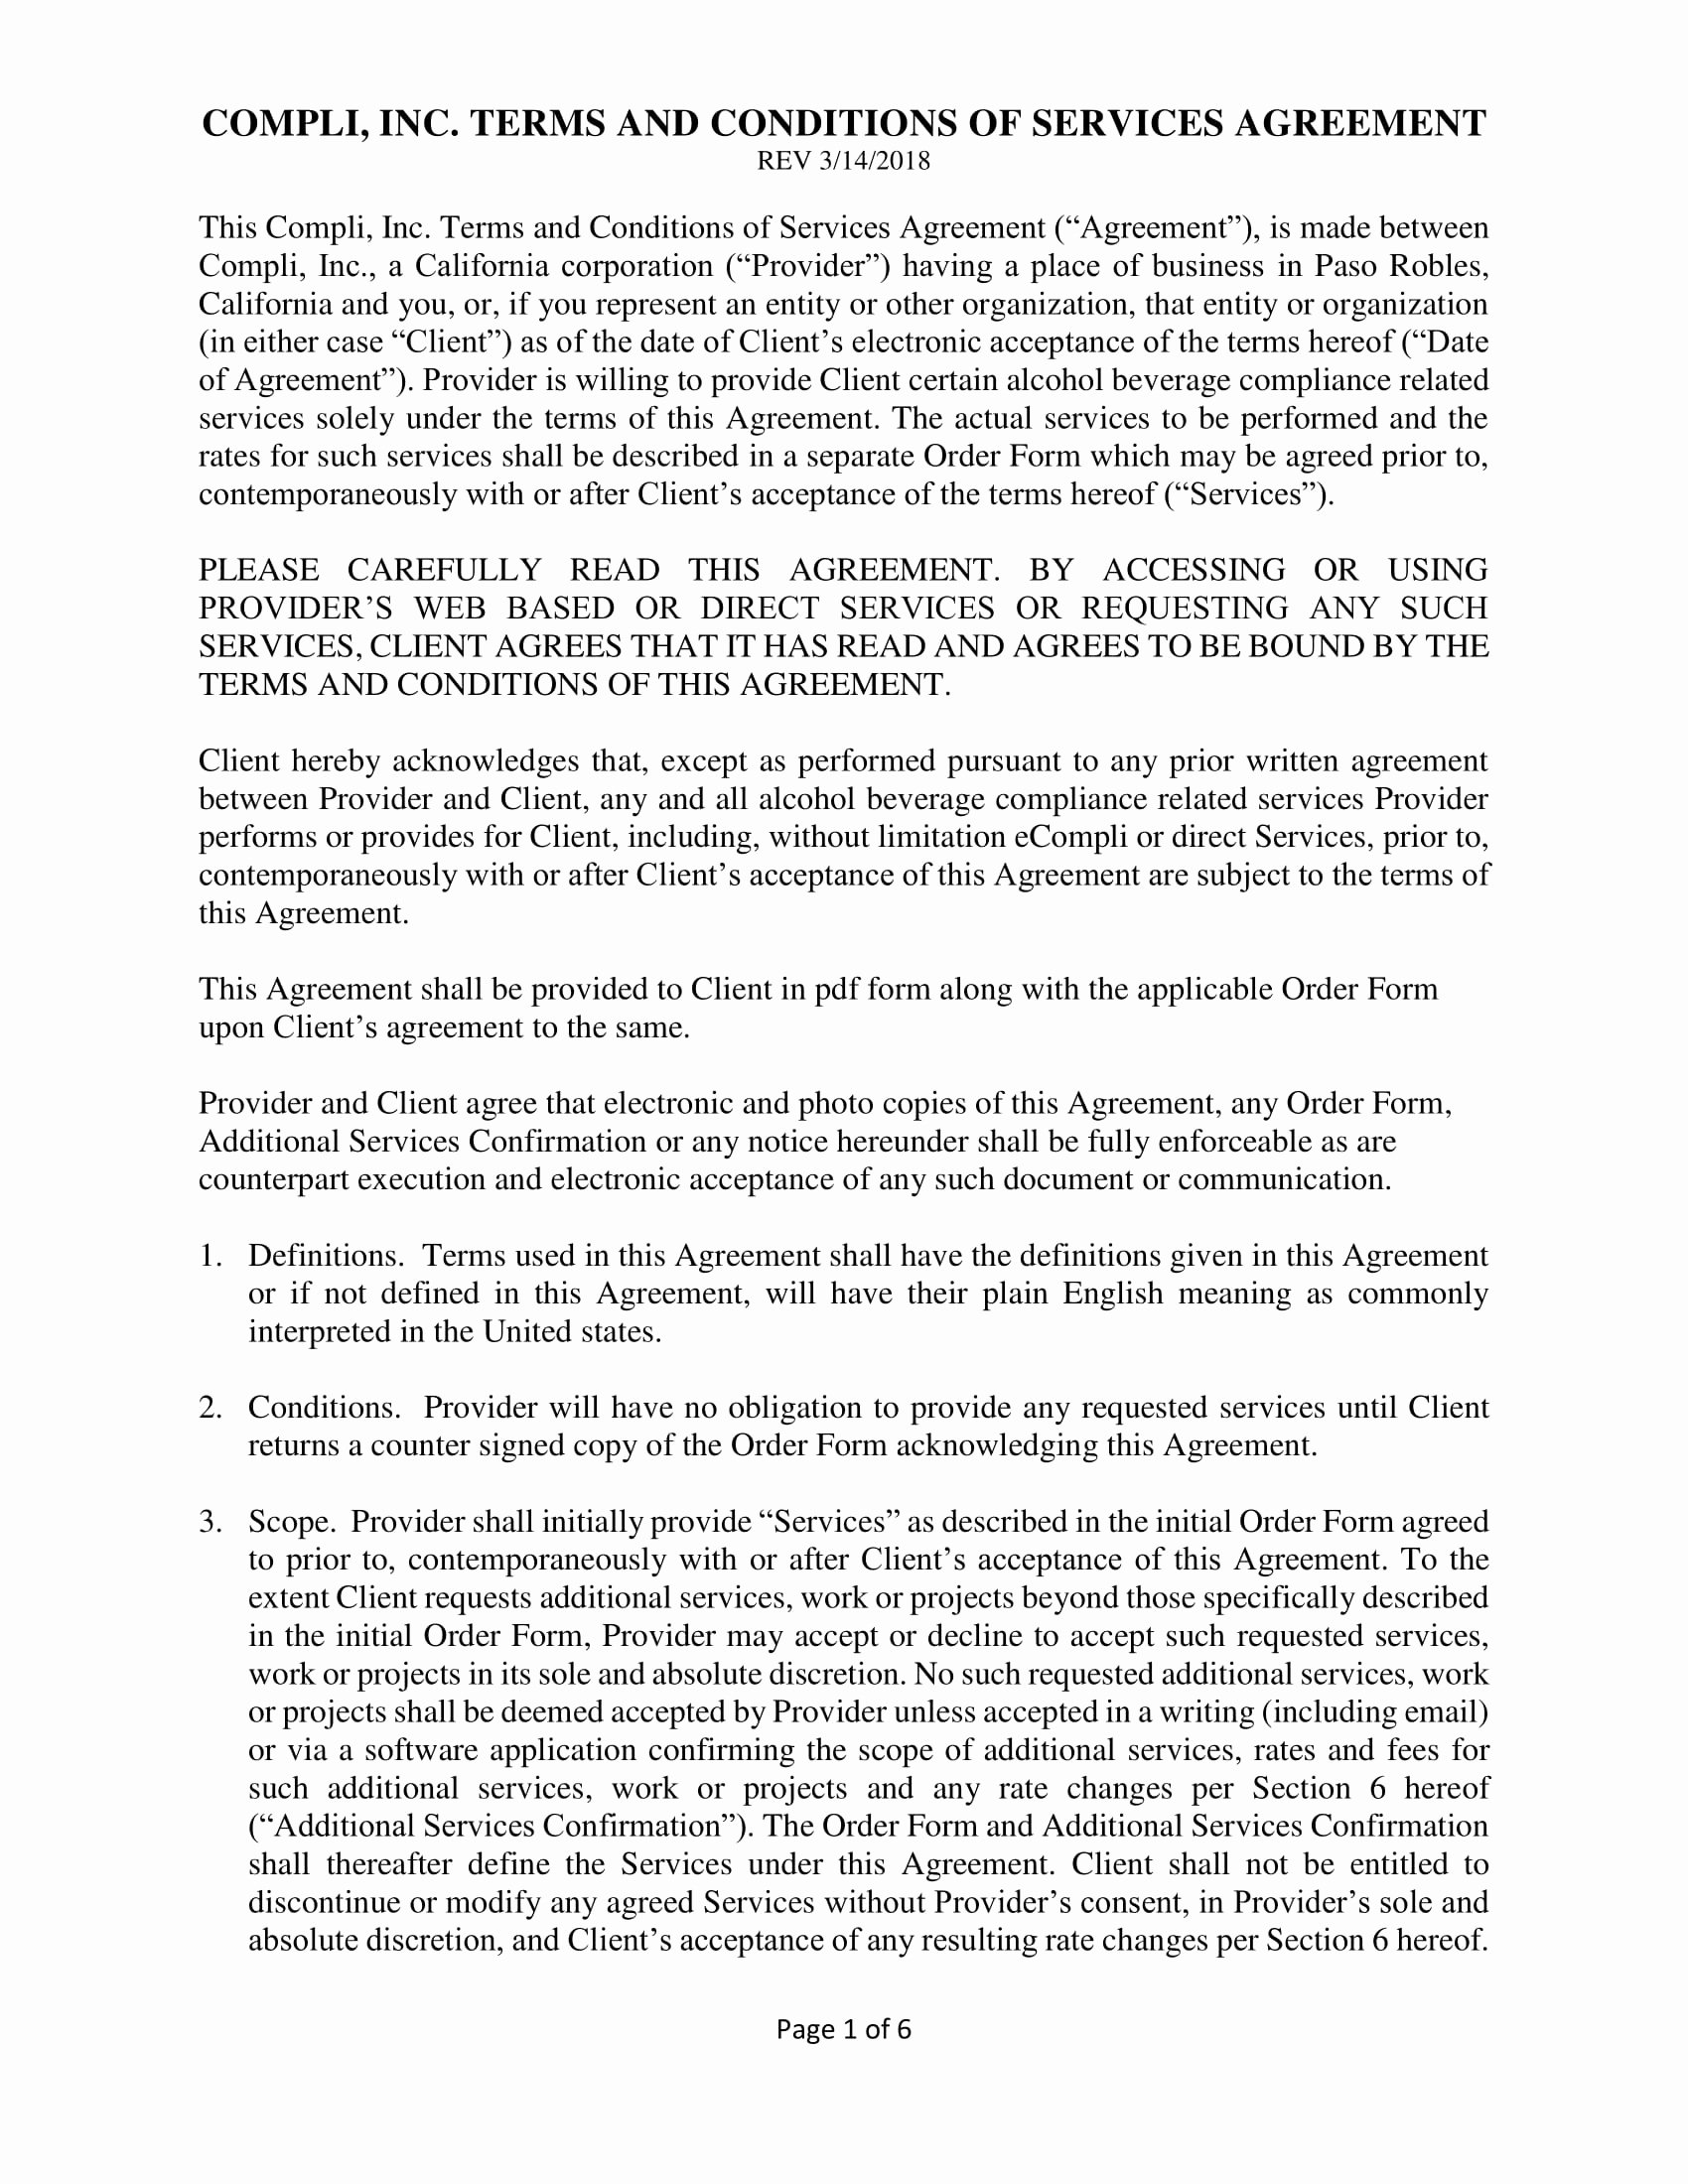 Service Agreement Template Pdf Lovely 11 Service Agreement Contract Template Examples Pdf